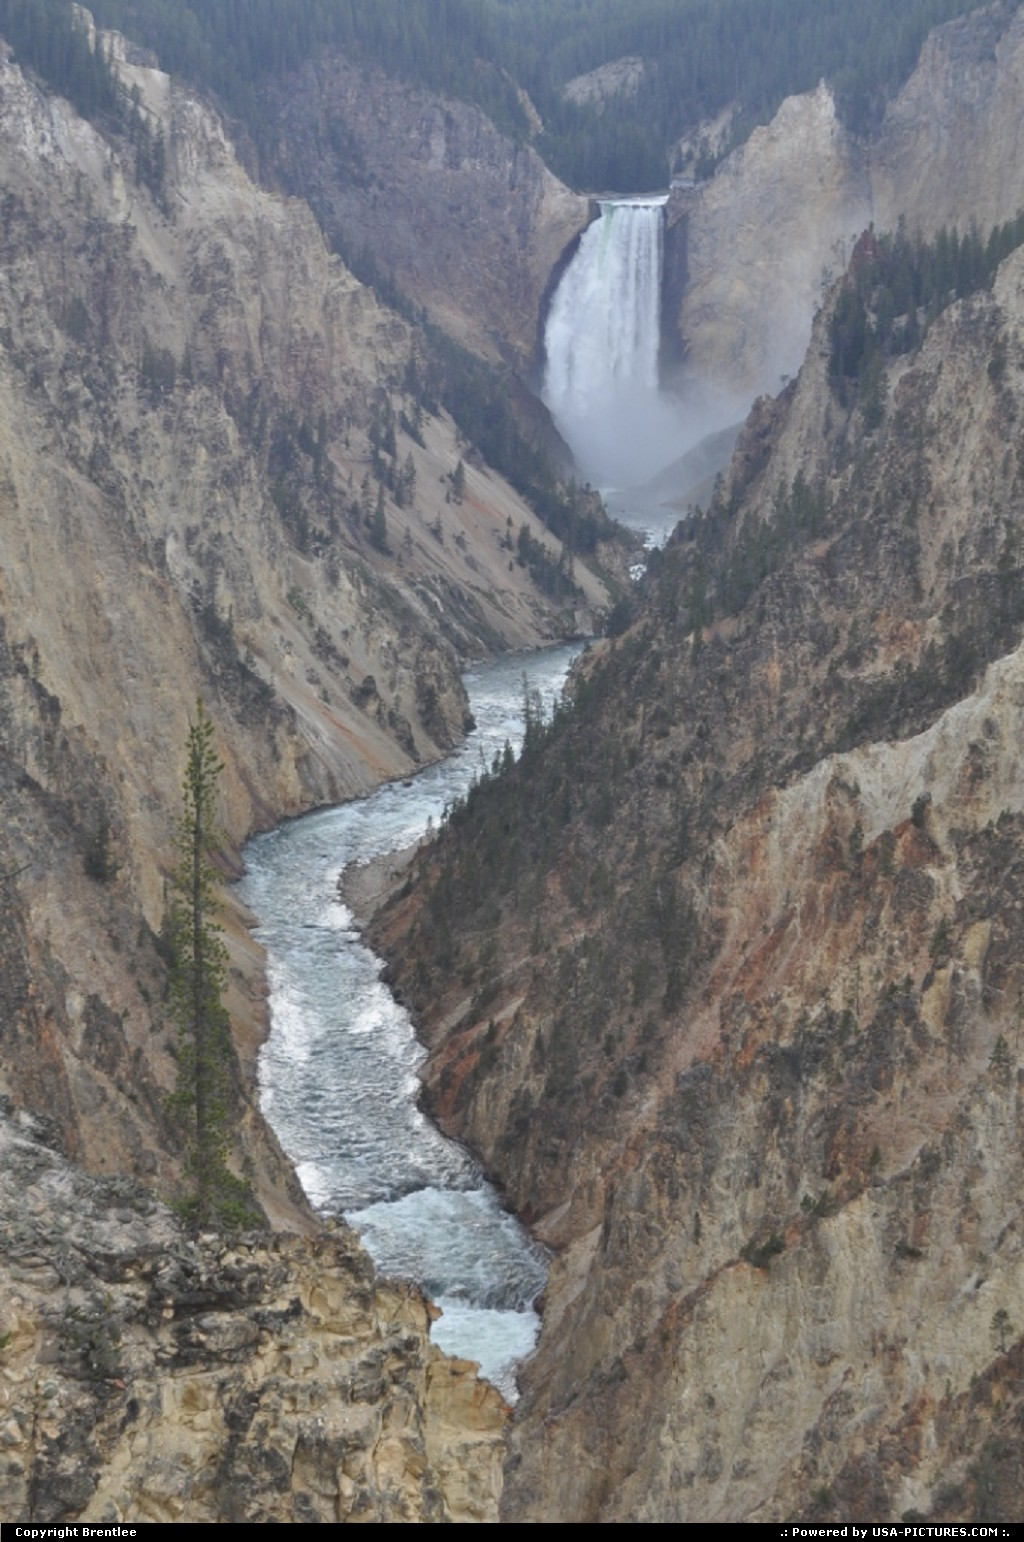 Picture by Brentlee:  Wyoming Yellowstone  waterfall